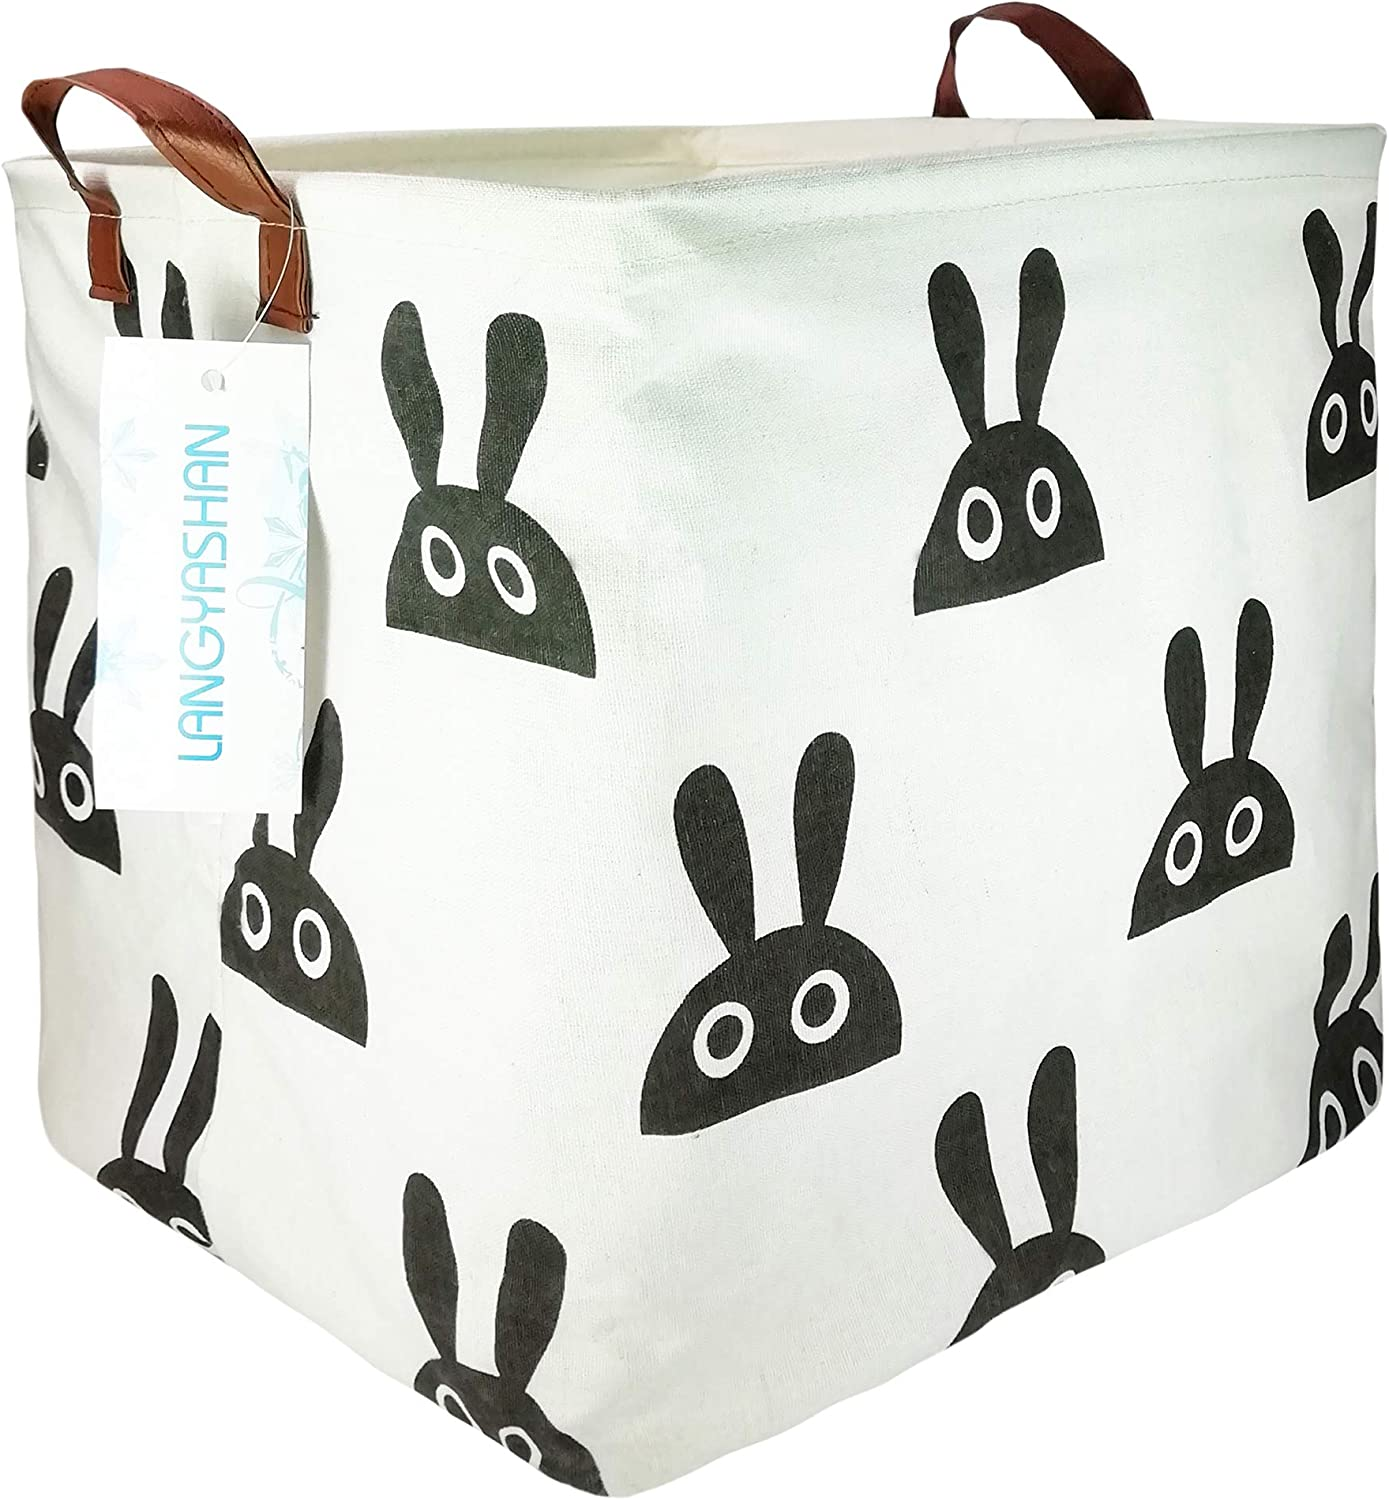 LANGYASHAN Square Storage Bins Waterproof Canvas Kids Laundry/Nursery Boxes for Shelves/Gift Baskets/Baby Shower Basket/Toy Organizer/Baby Room Decor(Bunny)